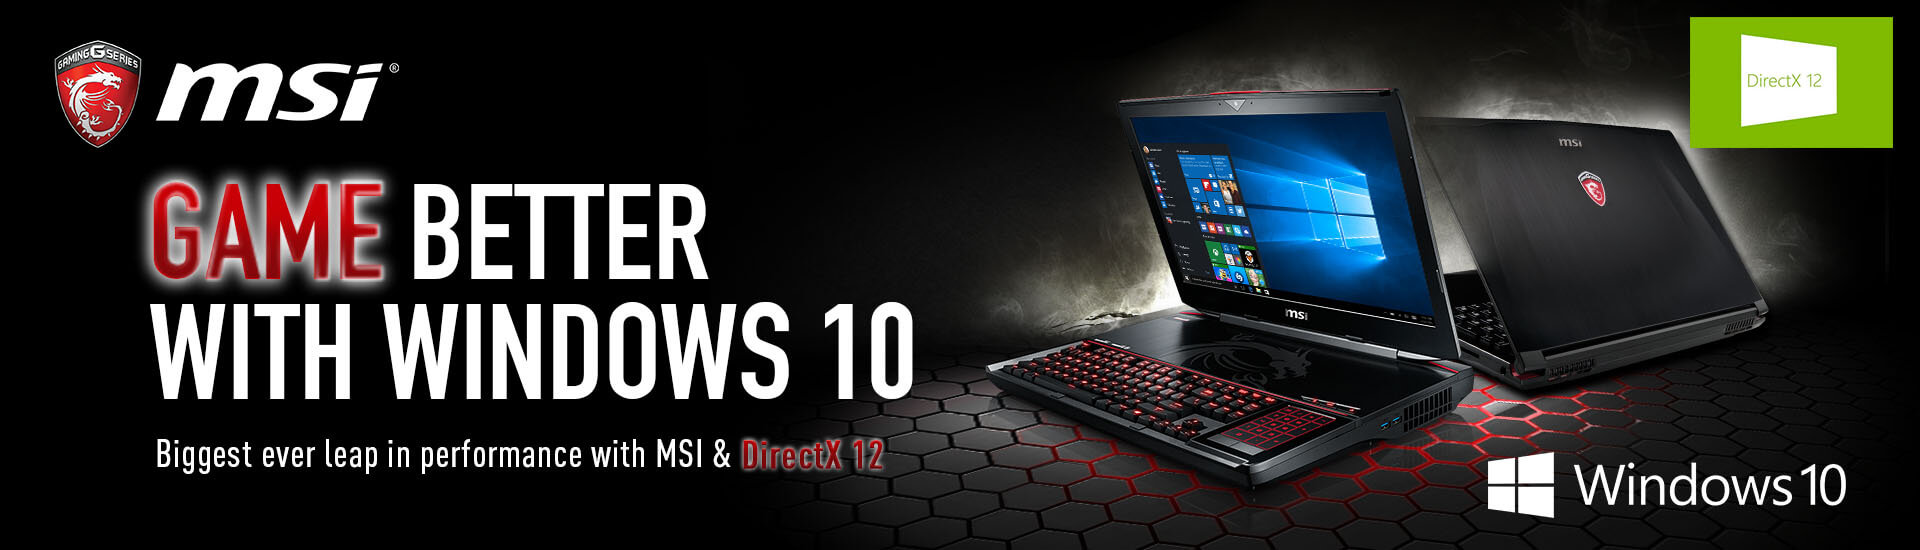 MSI Gaming Laptops and all Gaming Accessories available for the best affordable prices- best laptop store to buy online.